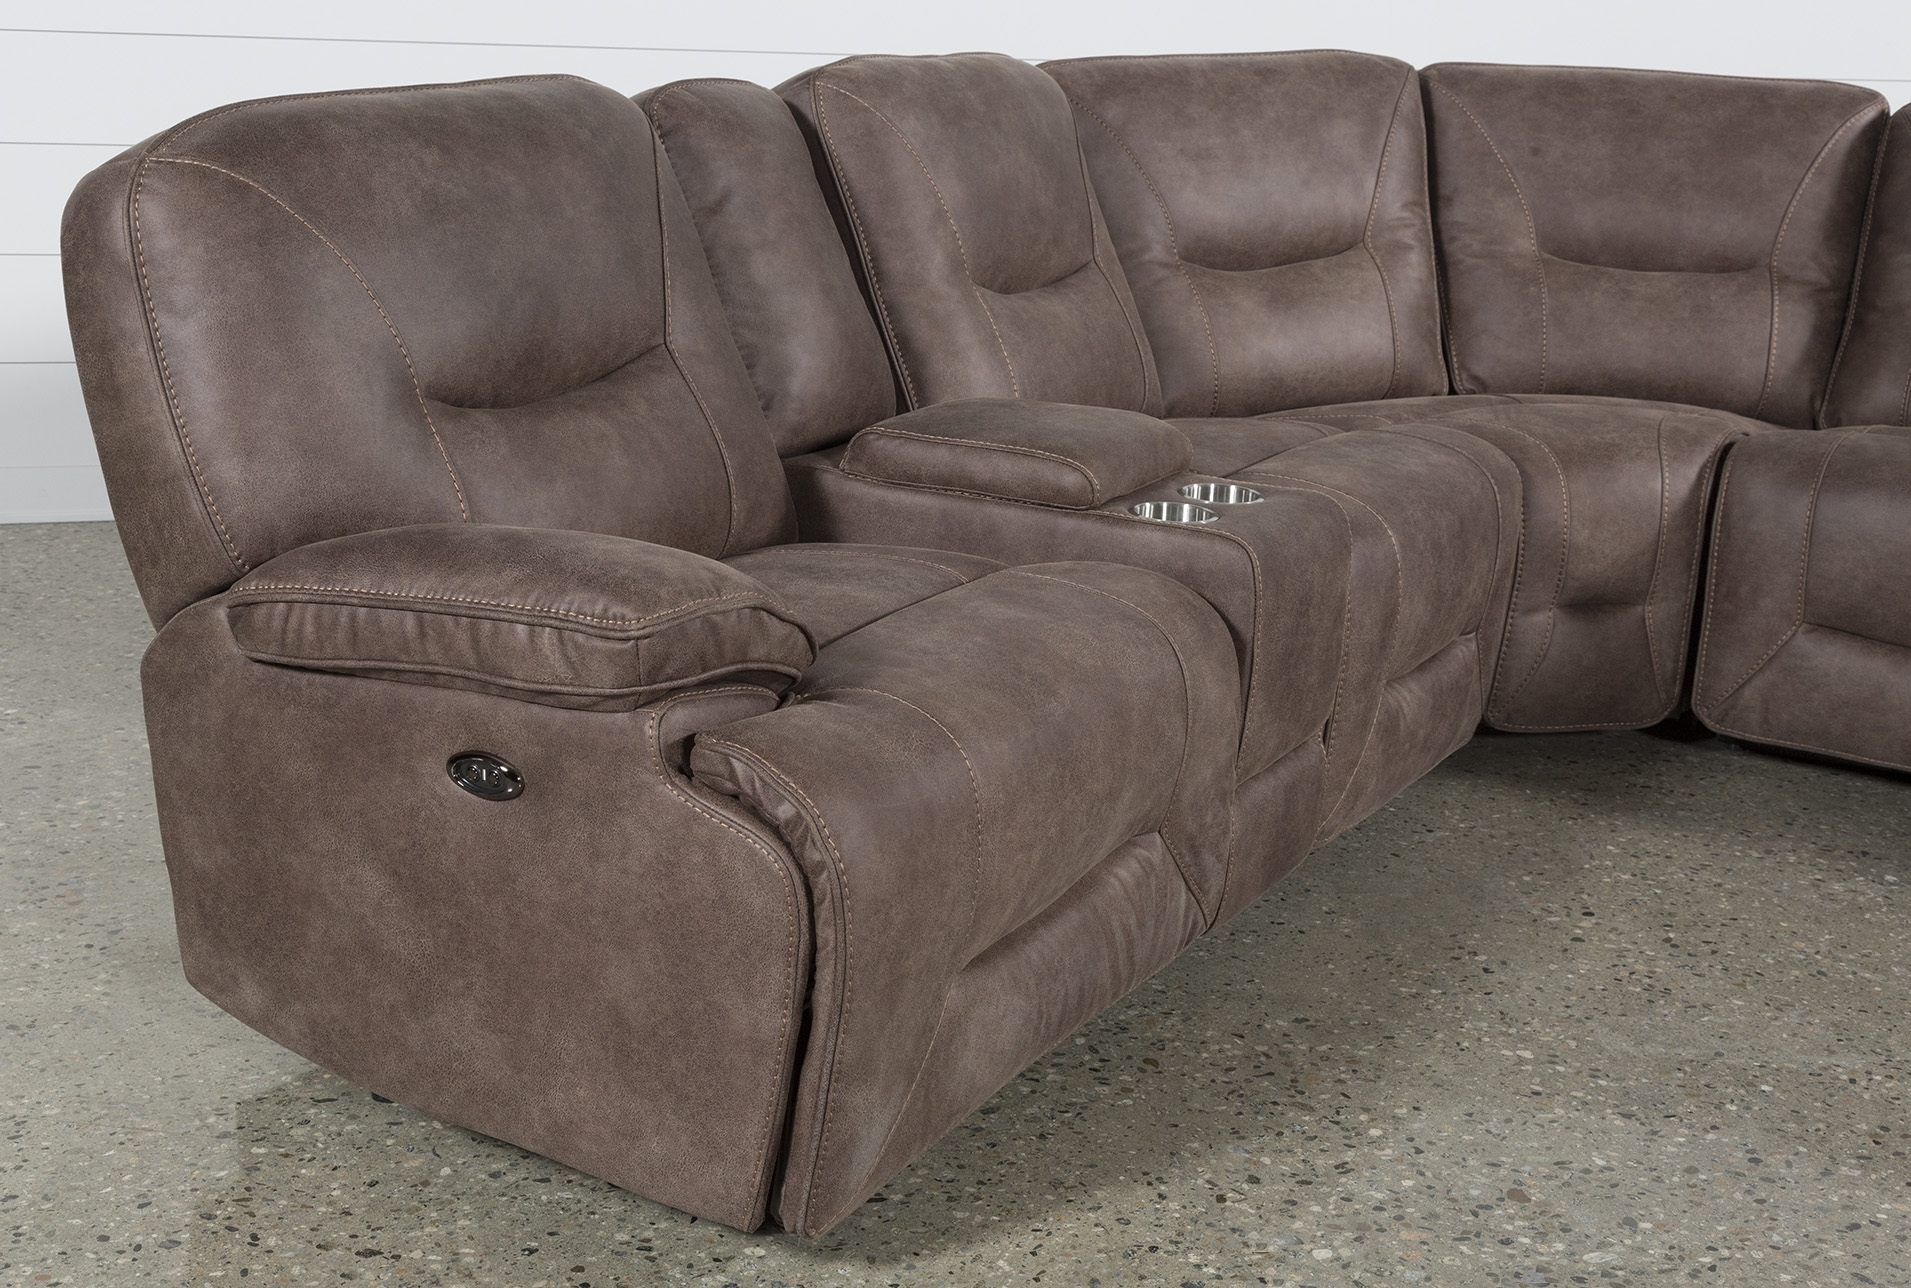 Jackson 6 Piece Power Reclining Sectional W/ Sleeper | Products with regard to Jackson 6 Piece Power Reclining Sectionals With  Sleeper (Image 8 of 30)